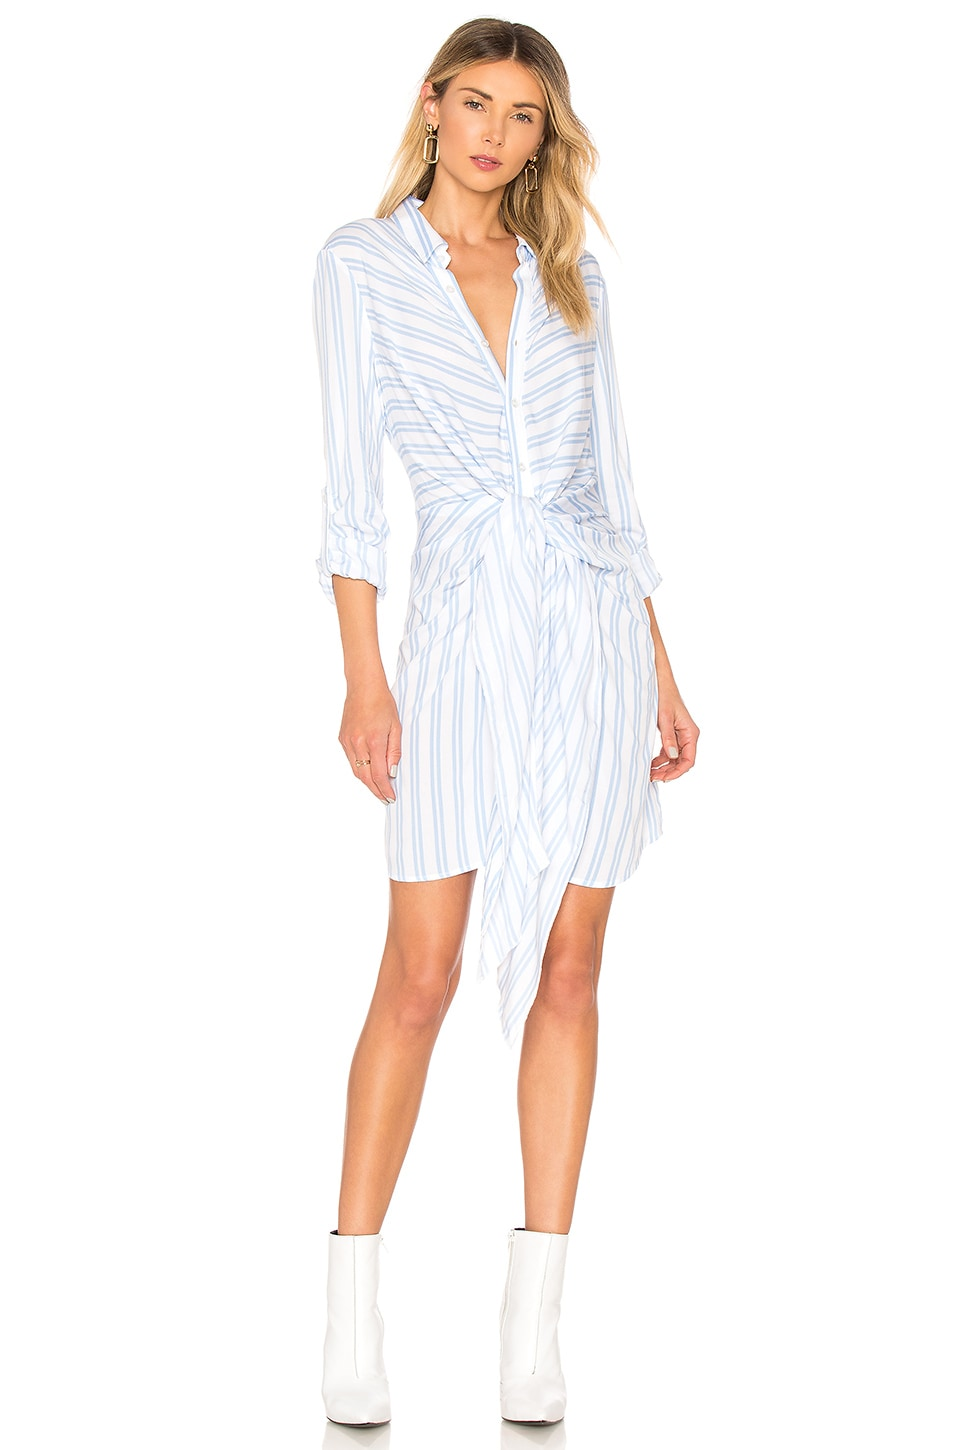 CENTRAL PARK WEST BLUEBELL TIE FRONT DRESS